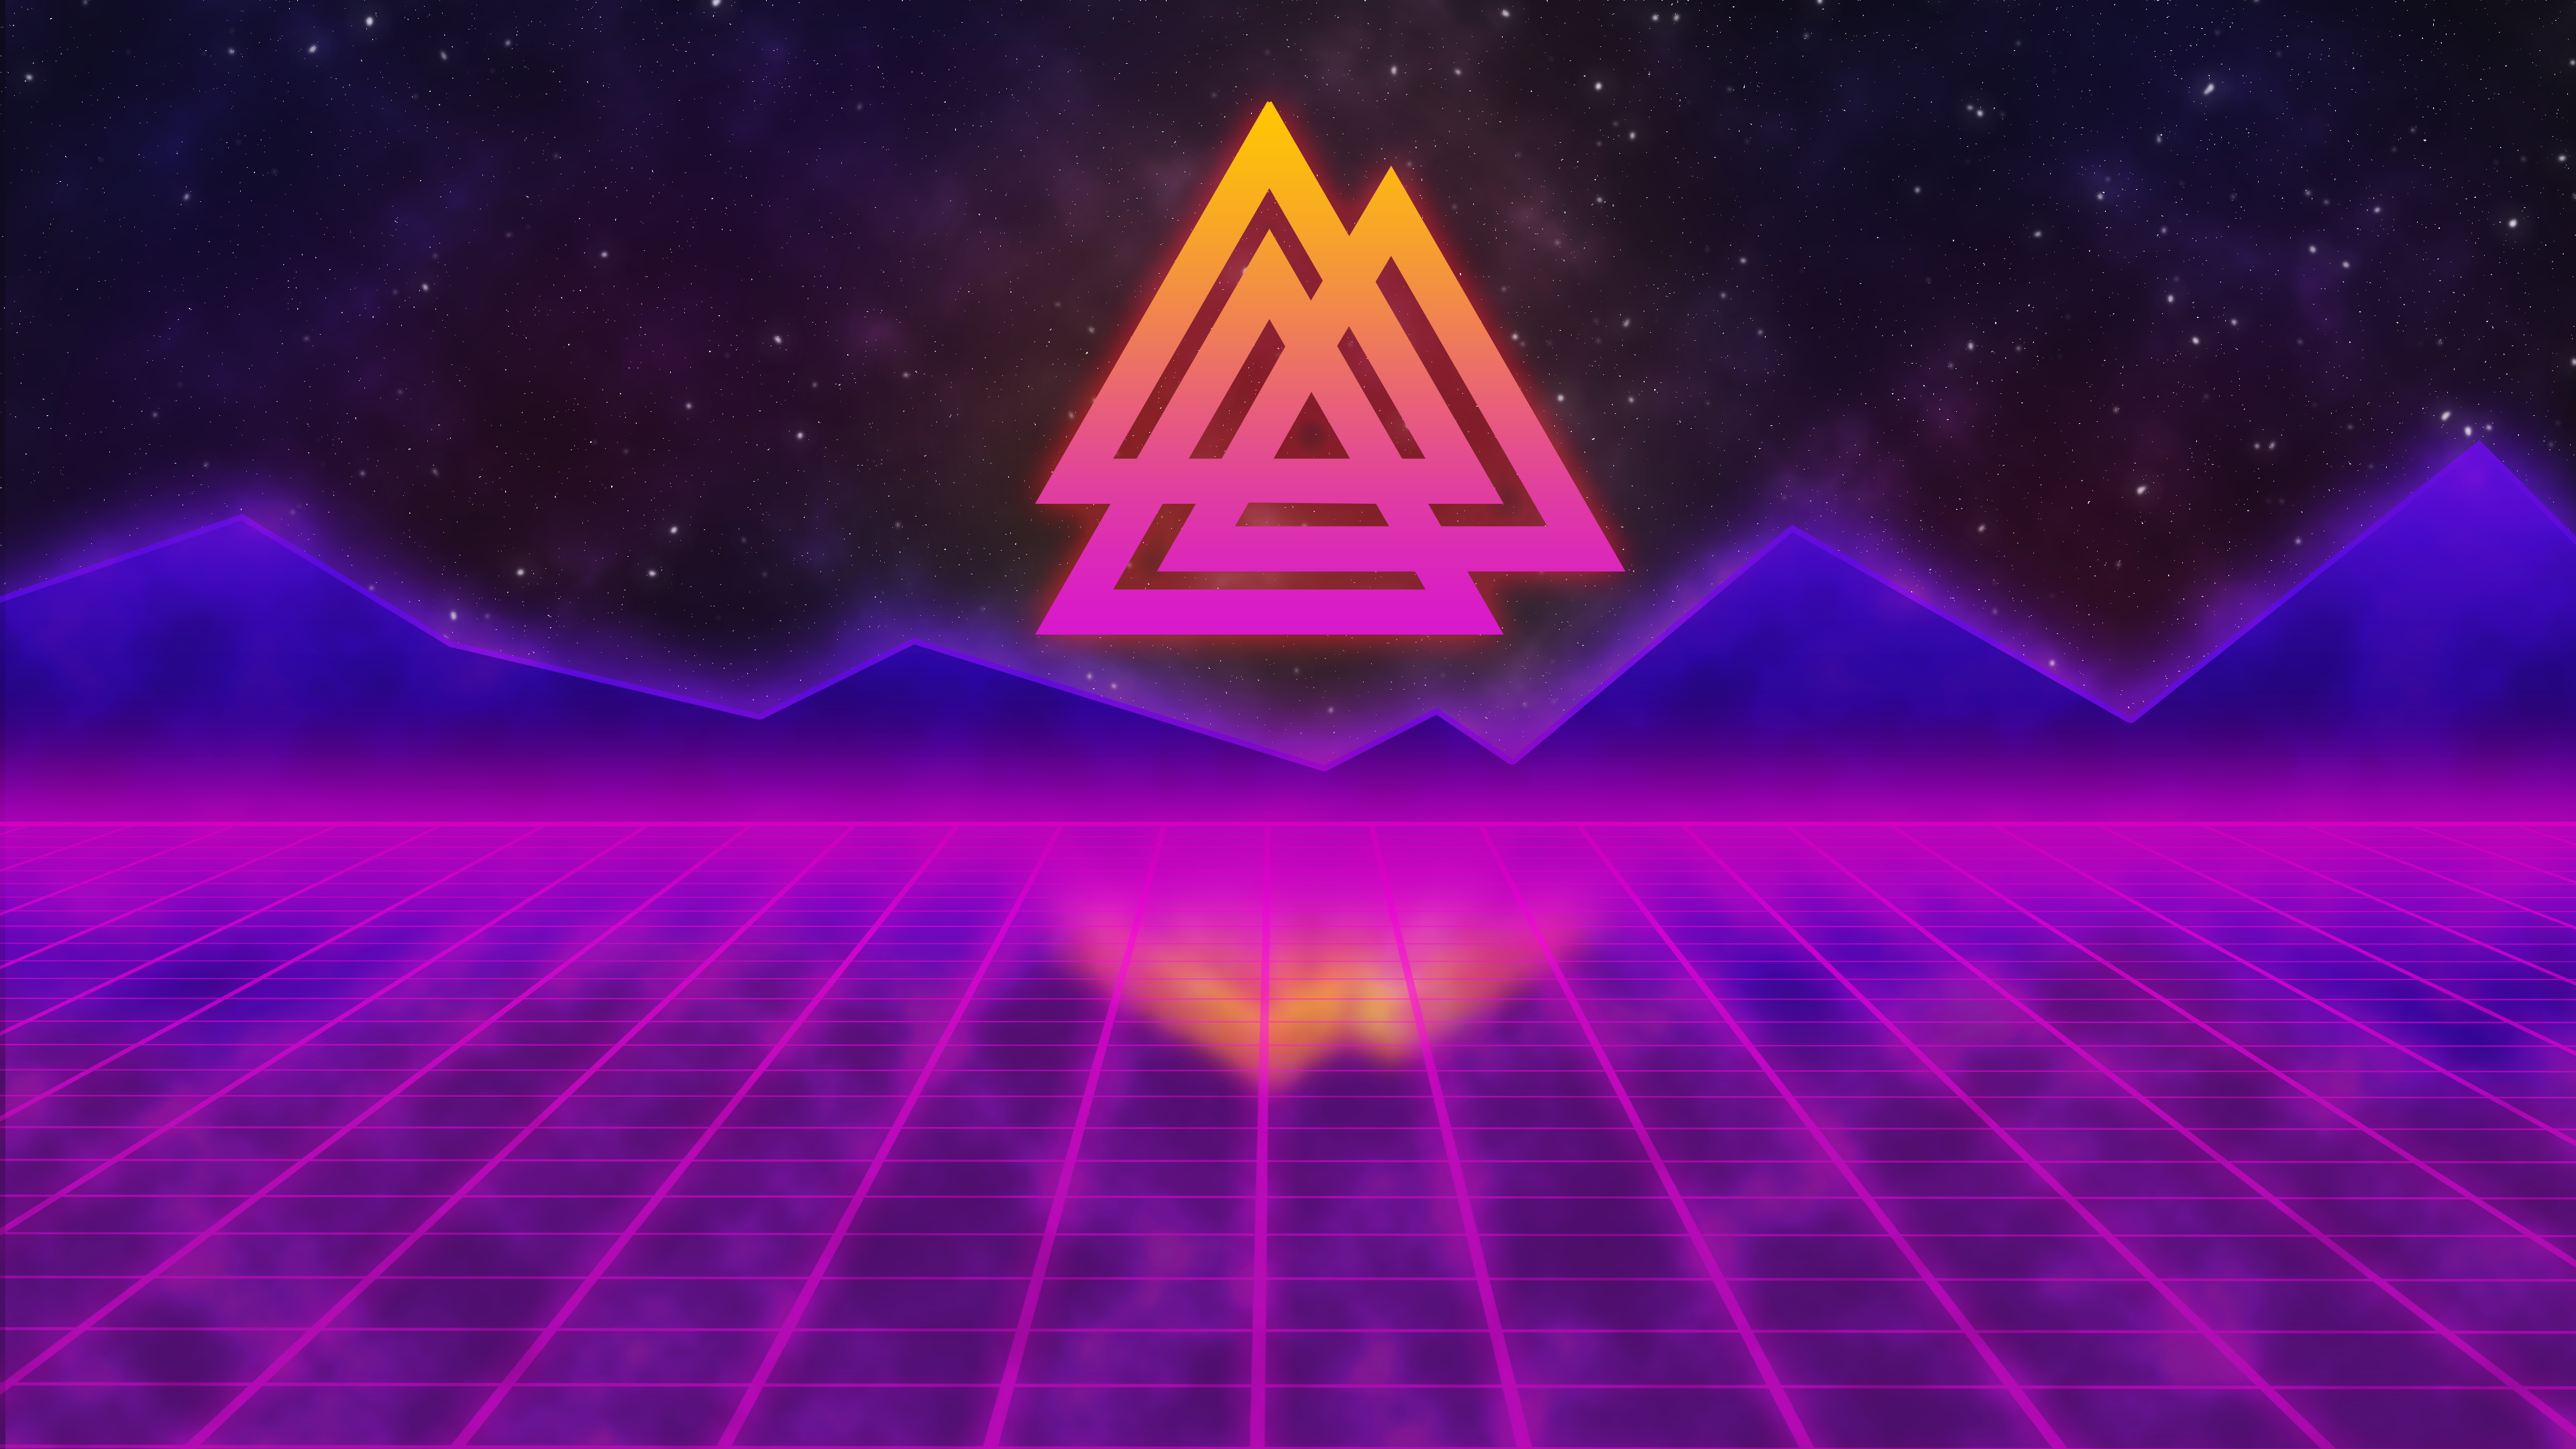 Synthwave viking valknut 3840 x 2160 hdwallpaper - Space 80s wallpaper ...